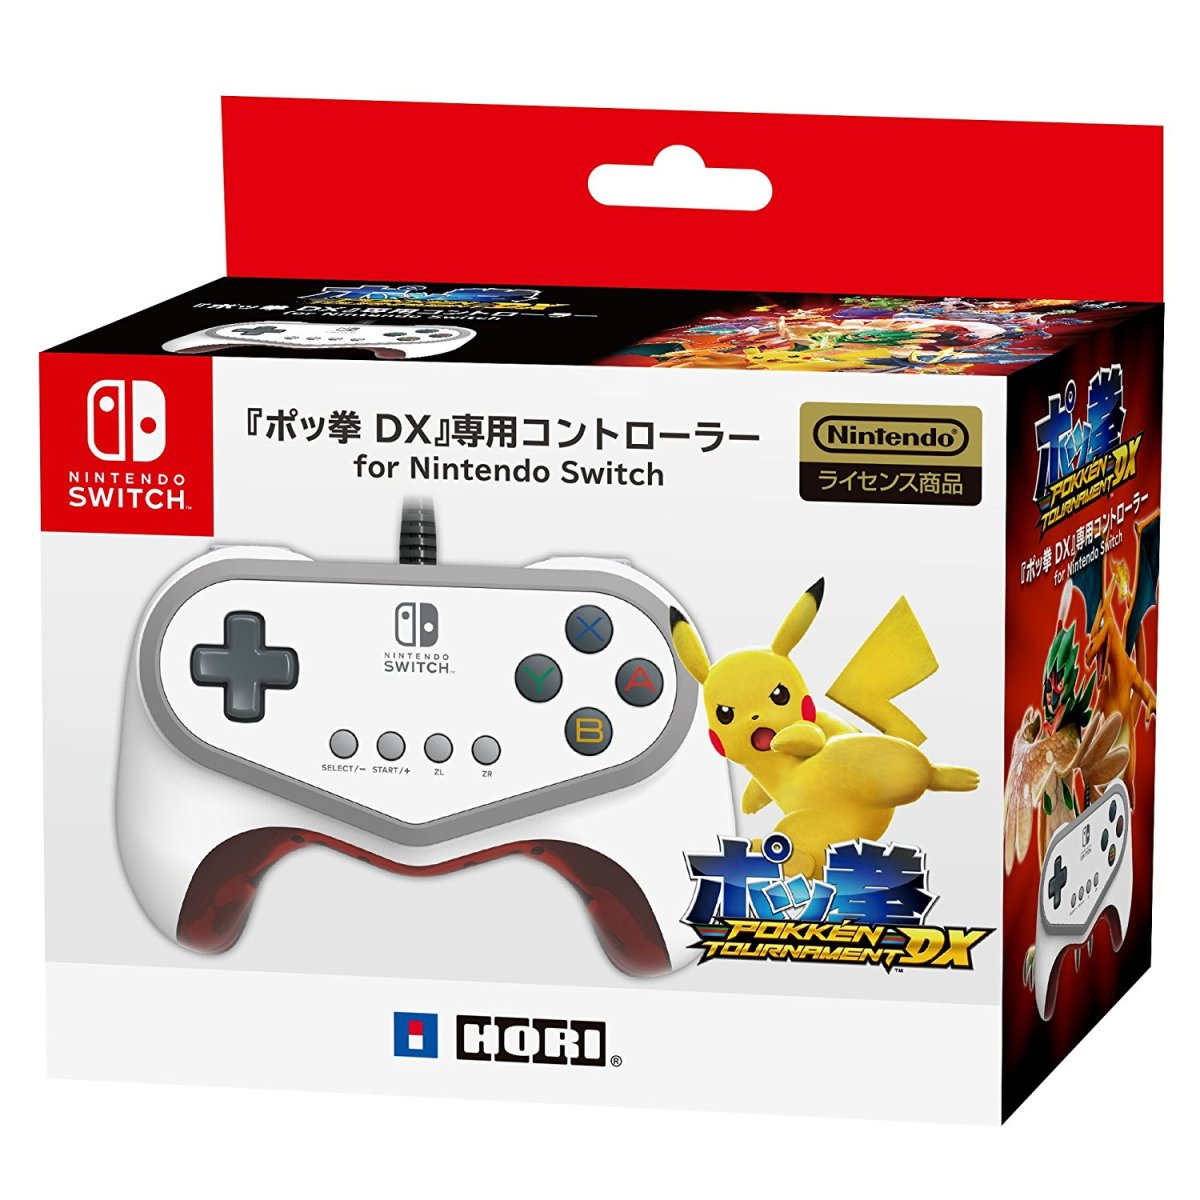 Japan: HORI Pokken Tournament DX Switch Controller Out On September 22